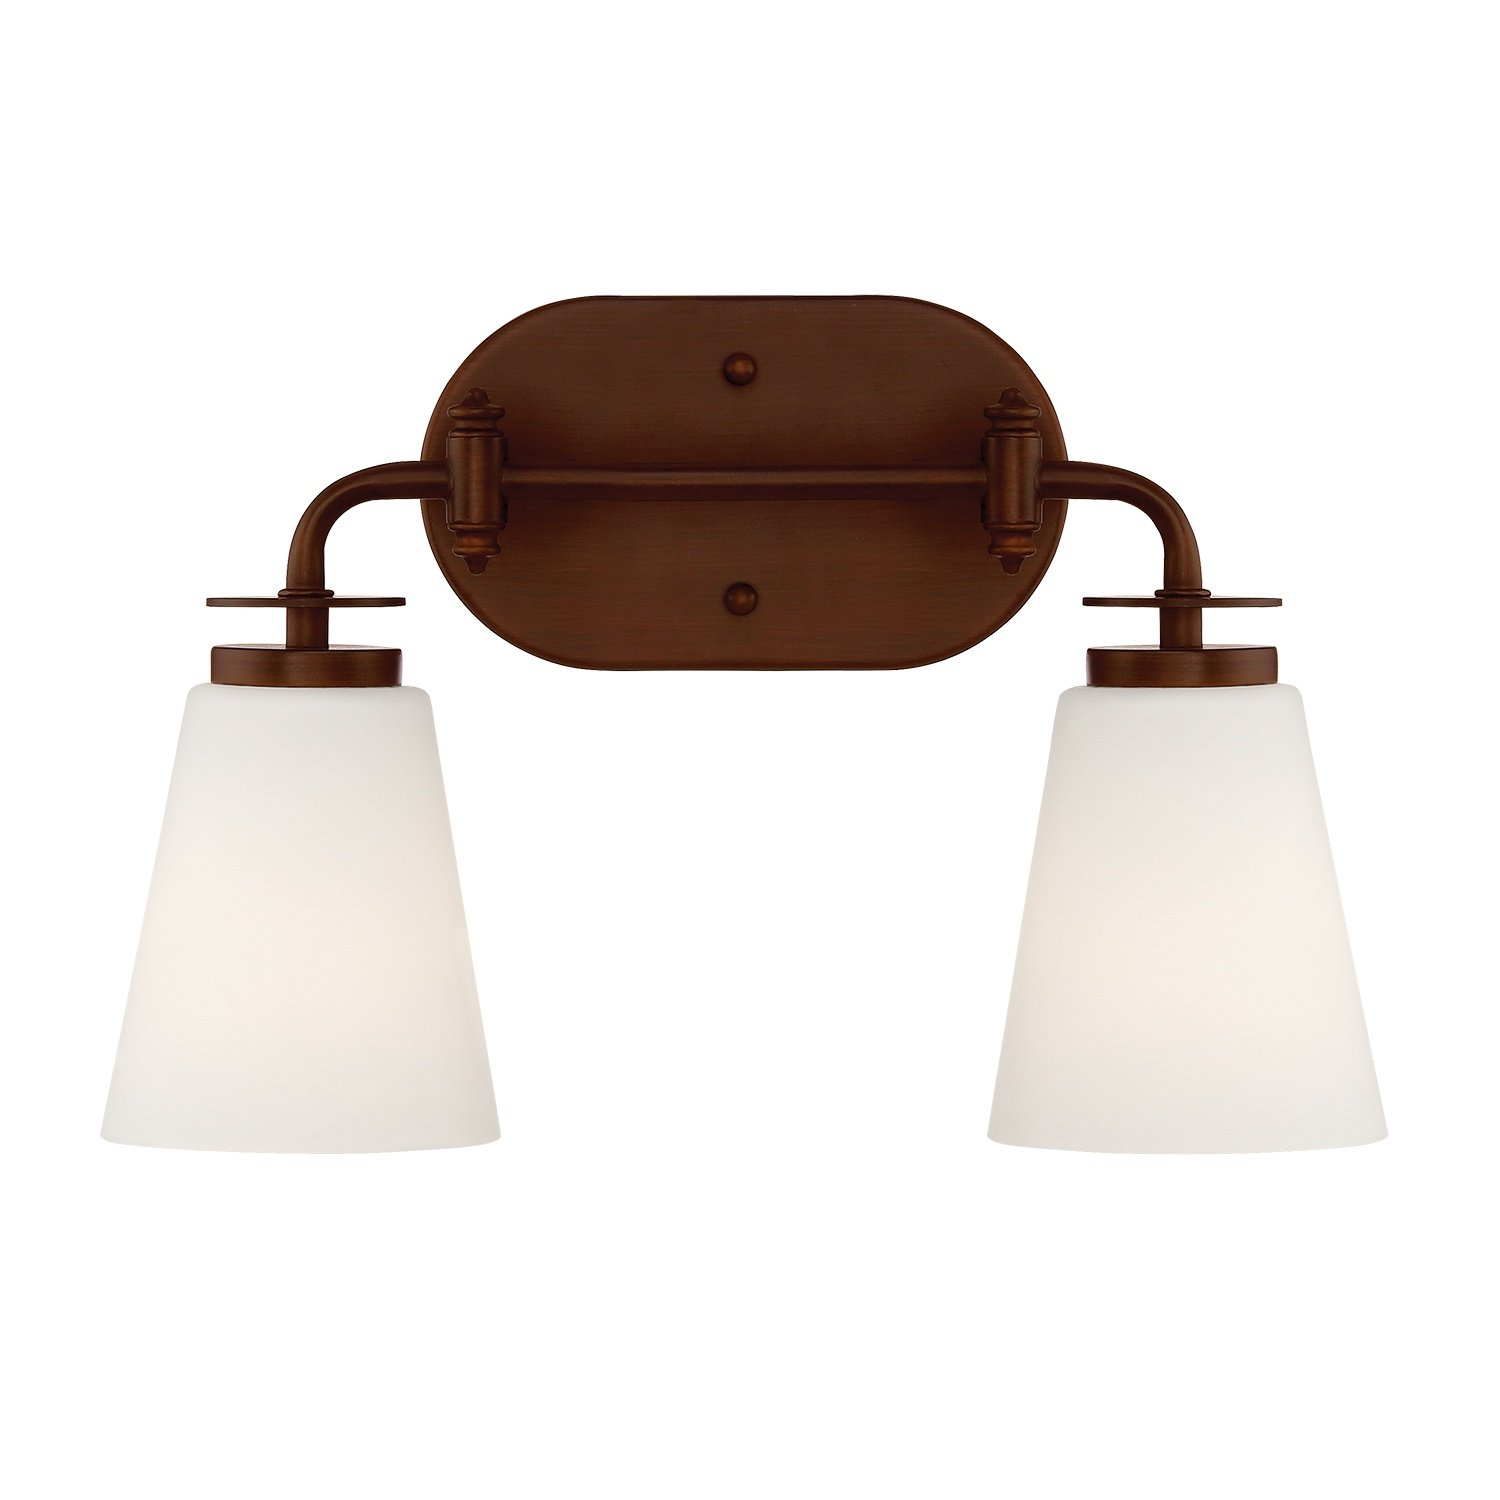 Millennium Lighting 392-RBZ Millennium:Two Light Vanity 2-Light Bath Vanity in Rubbed Bronze